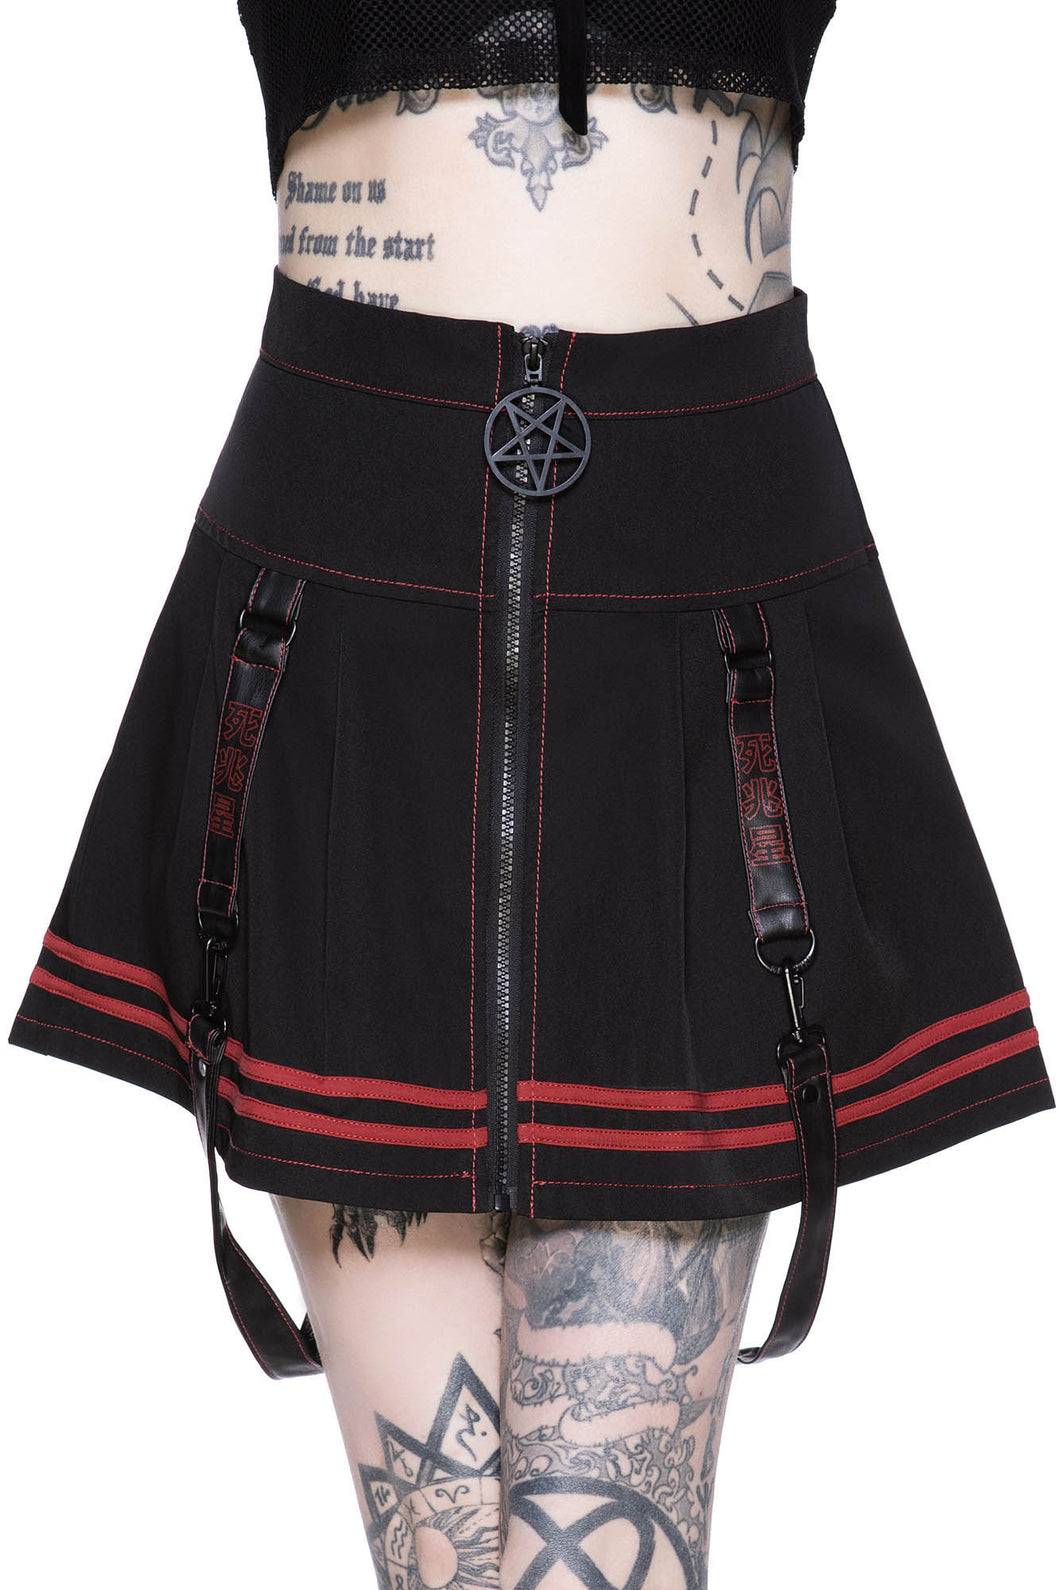 Killstar Discord Mini Skirt - Kate's Clothing